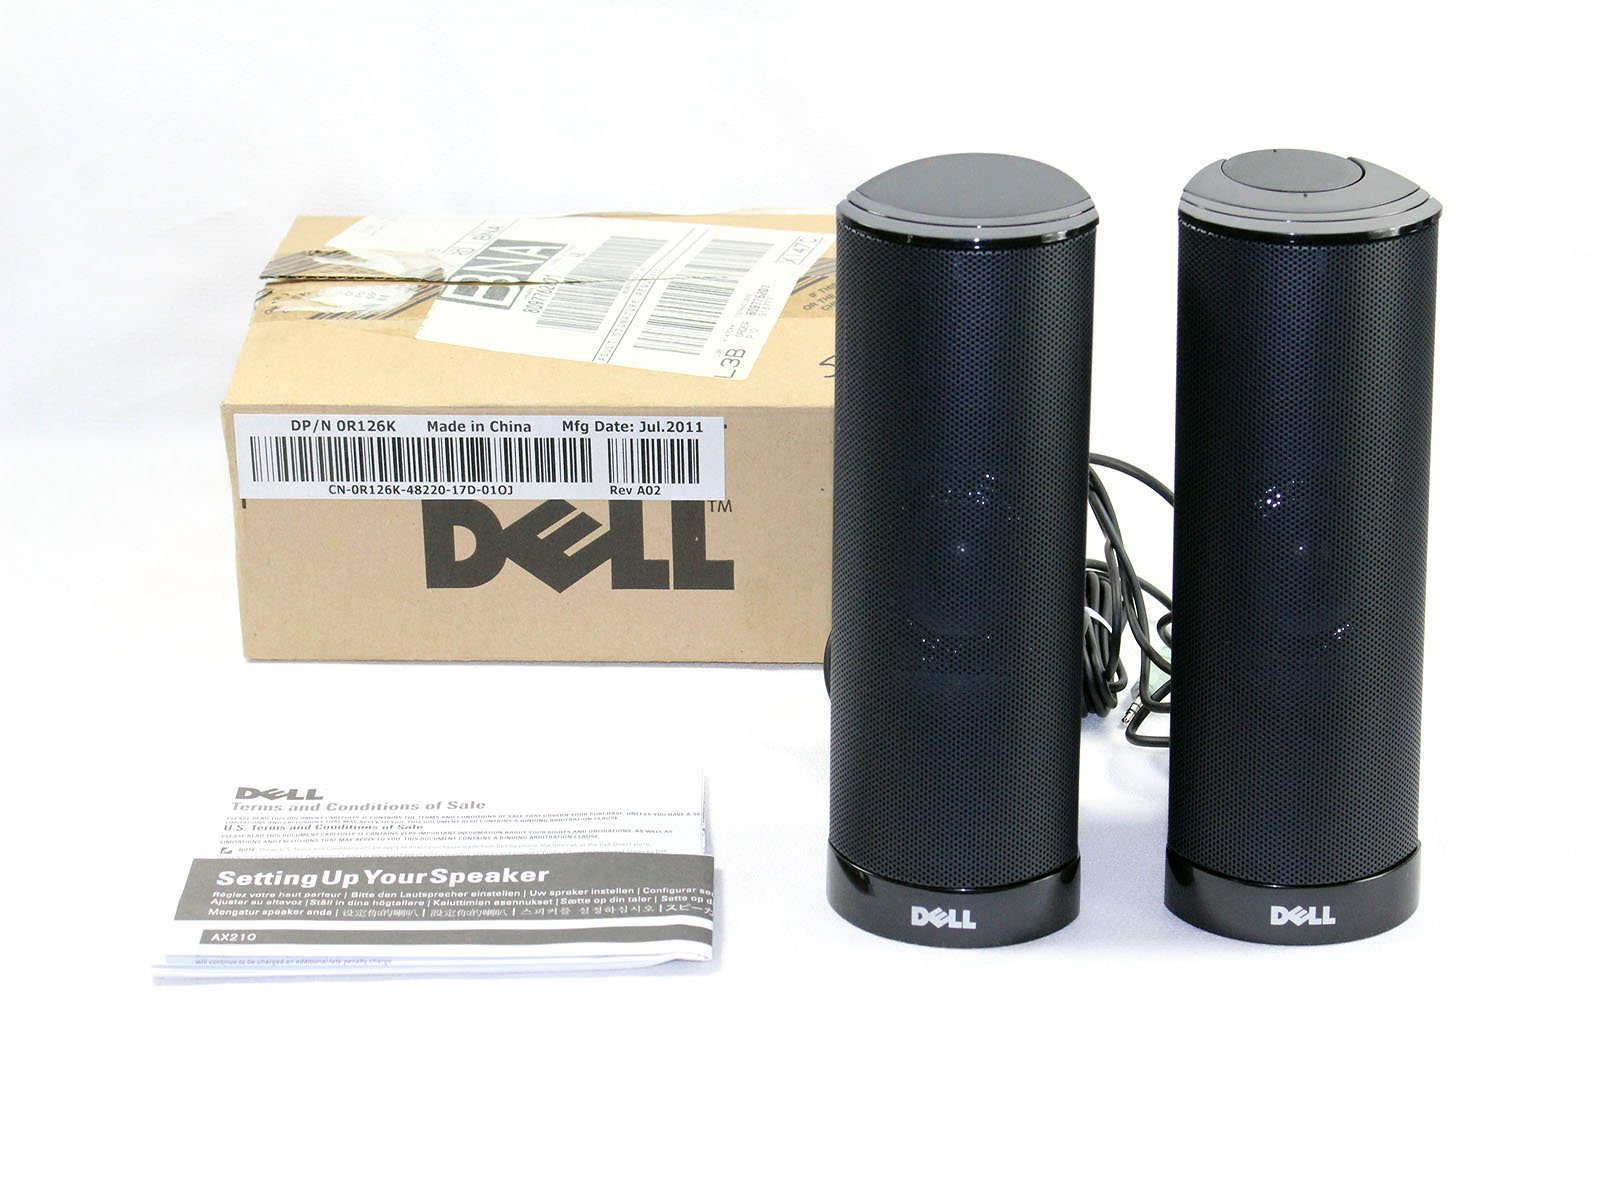 Genuine OEM Dell AX210 Black USB Wired 2.0 Computer Desktop Powered Stereo Multimedia Speakers 2-Piece Upgrade Part Numbers: R125K, R126K, X156C, X146C, H252D, AX210, 464-7184, 1.2 Watt Maximum Power Output, Amplifier Integrated with 1/8 Mini Audio Jack,